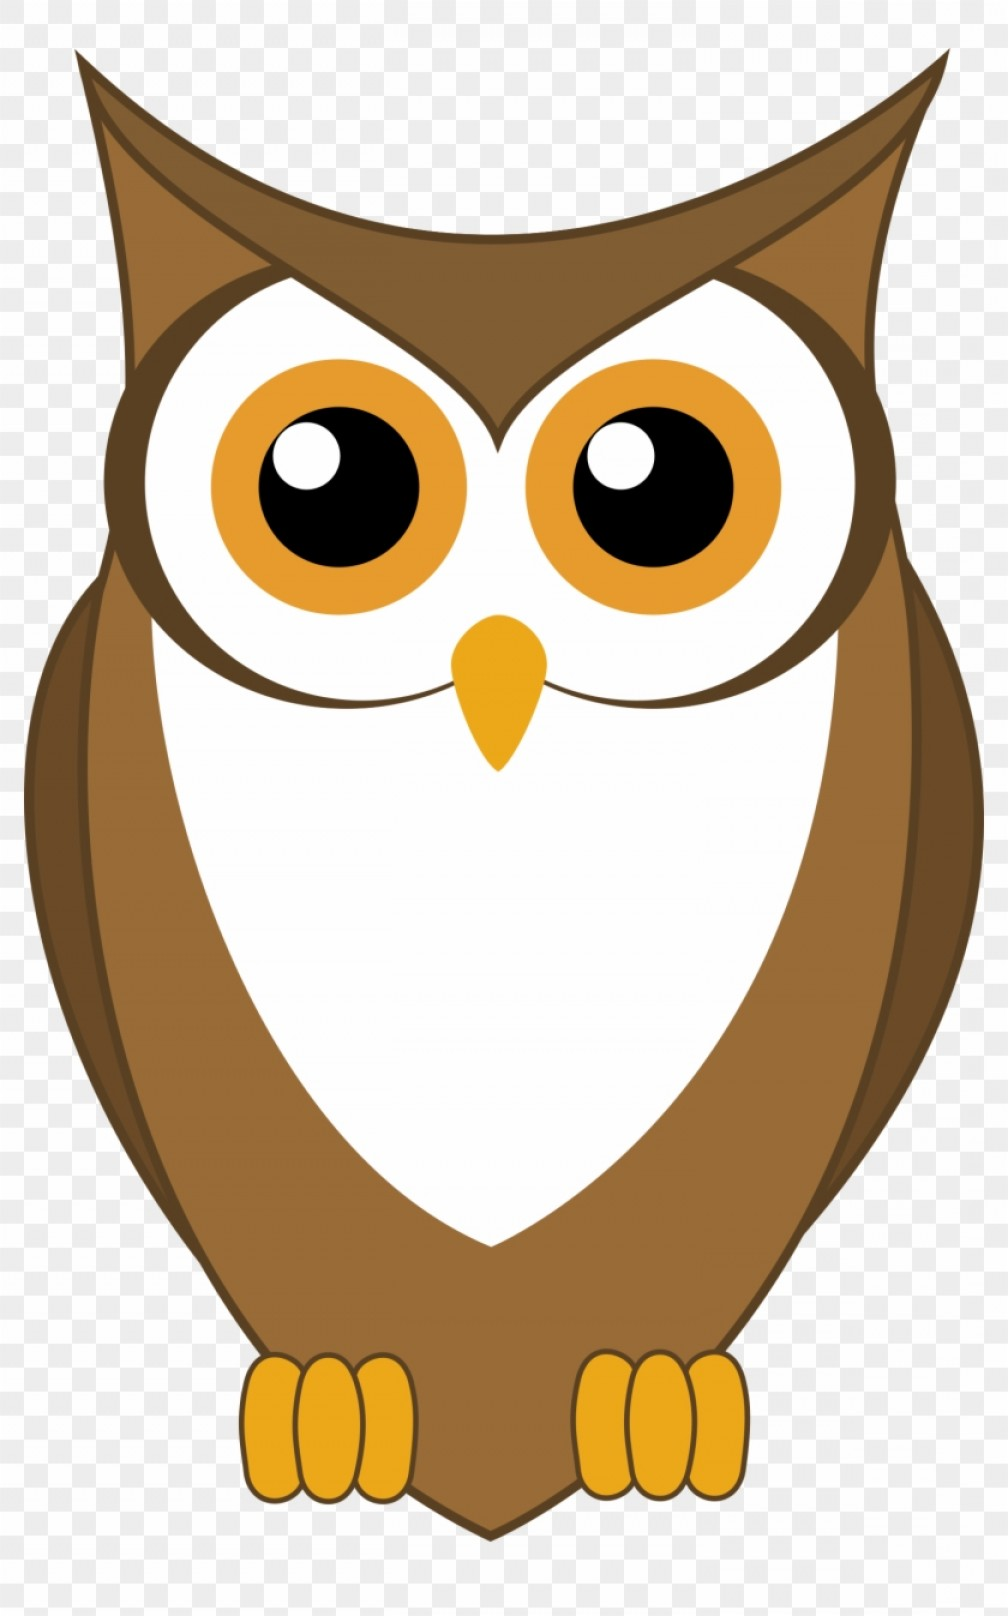 Mihhhaahclipart Of Baby Owl Clipart Of Cute Owls Clipart Owl Vector.